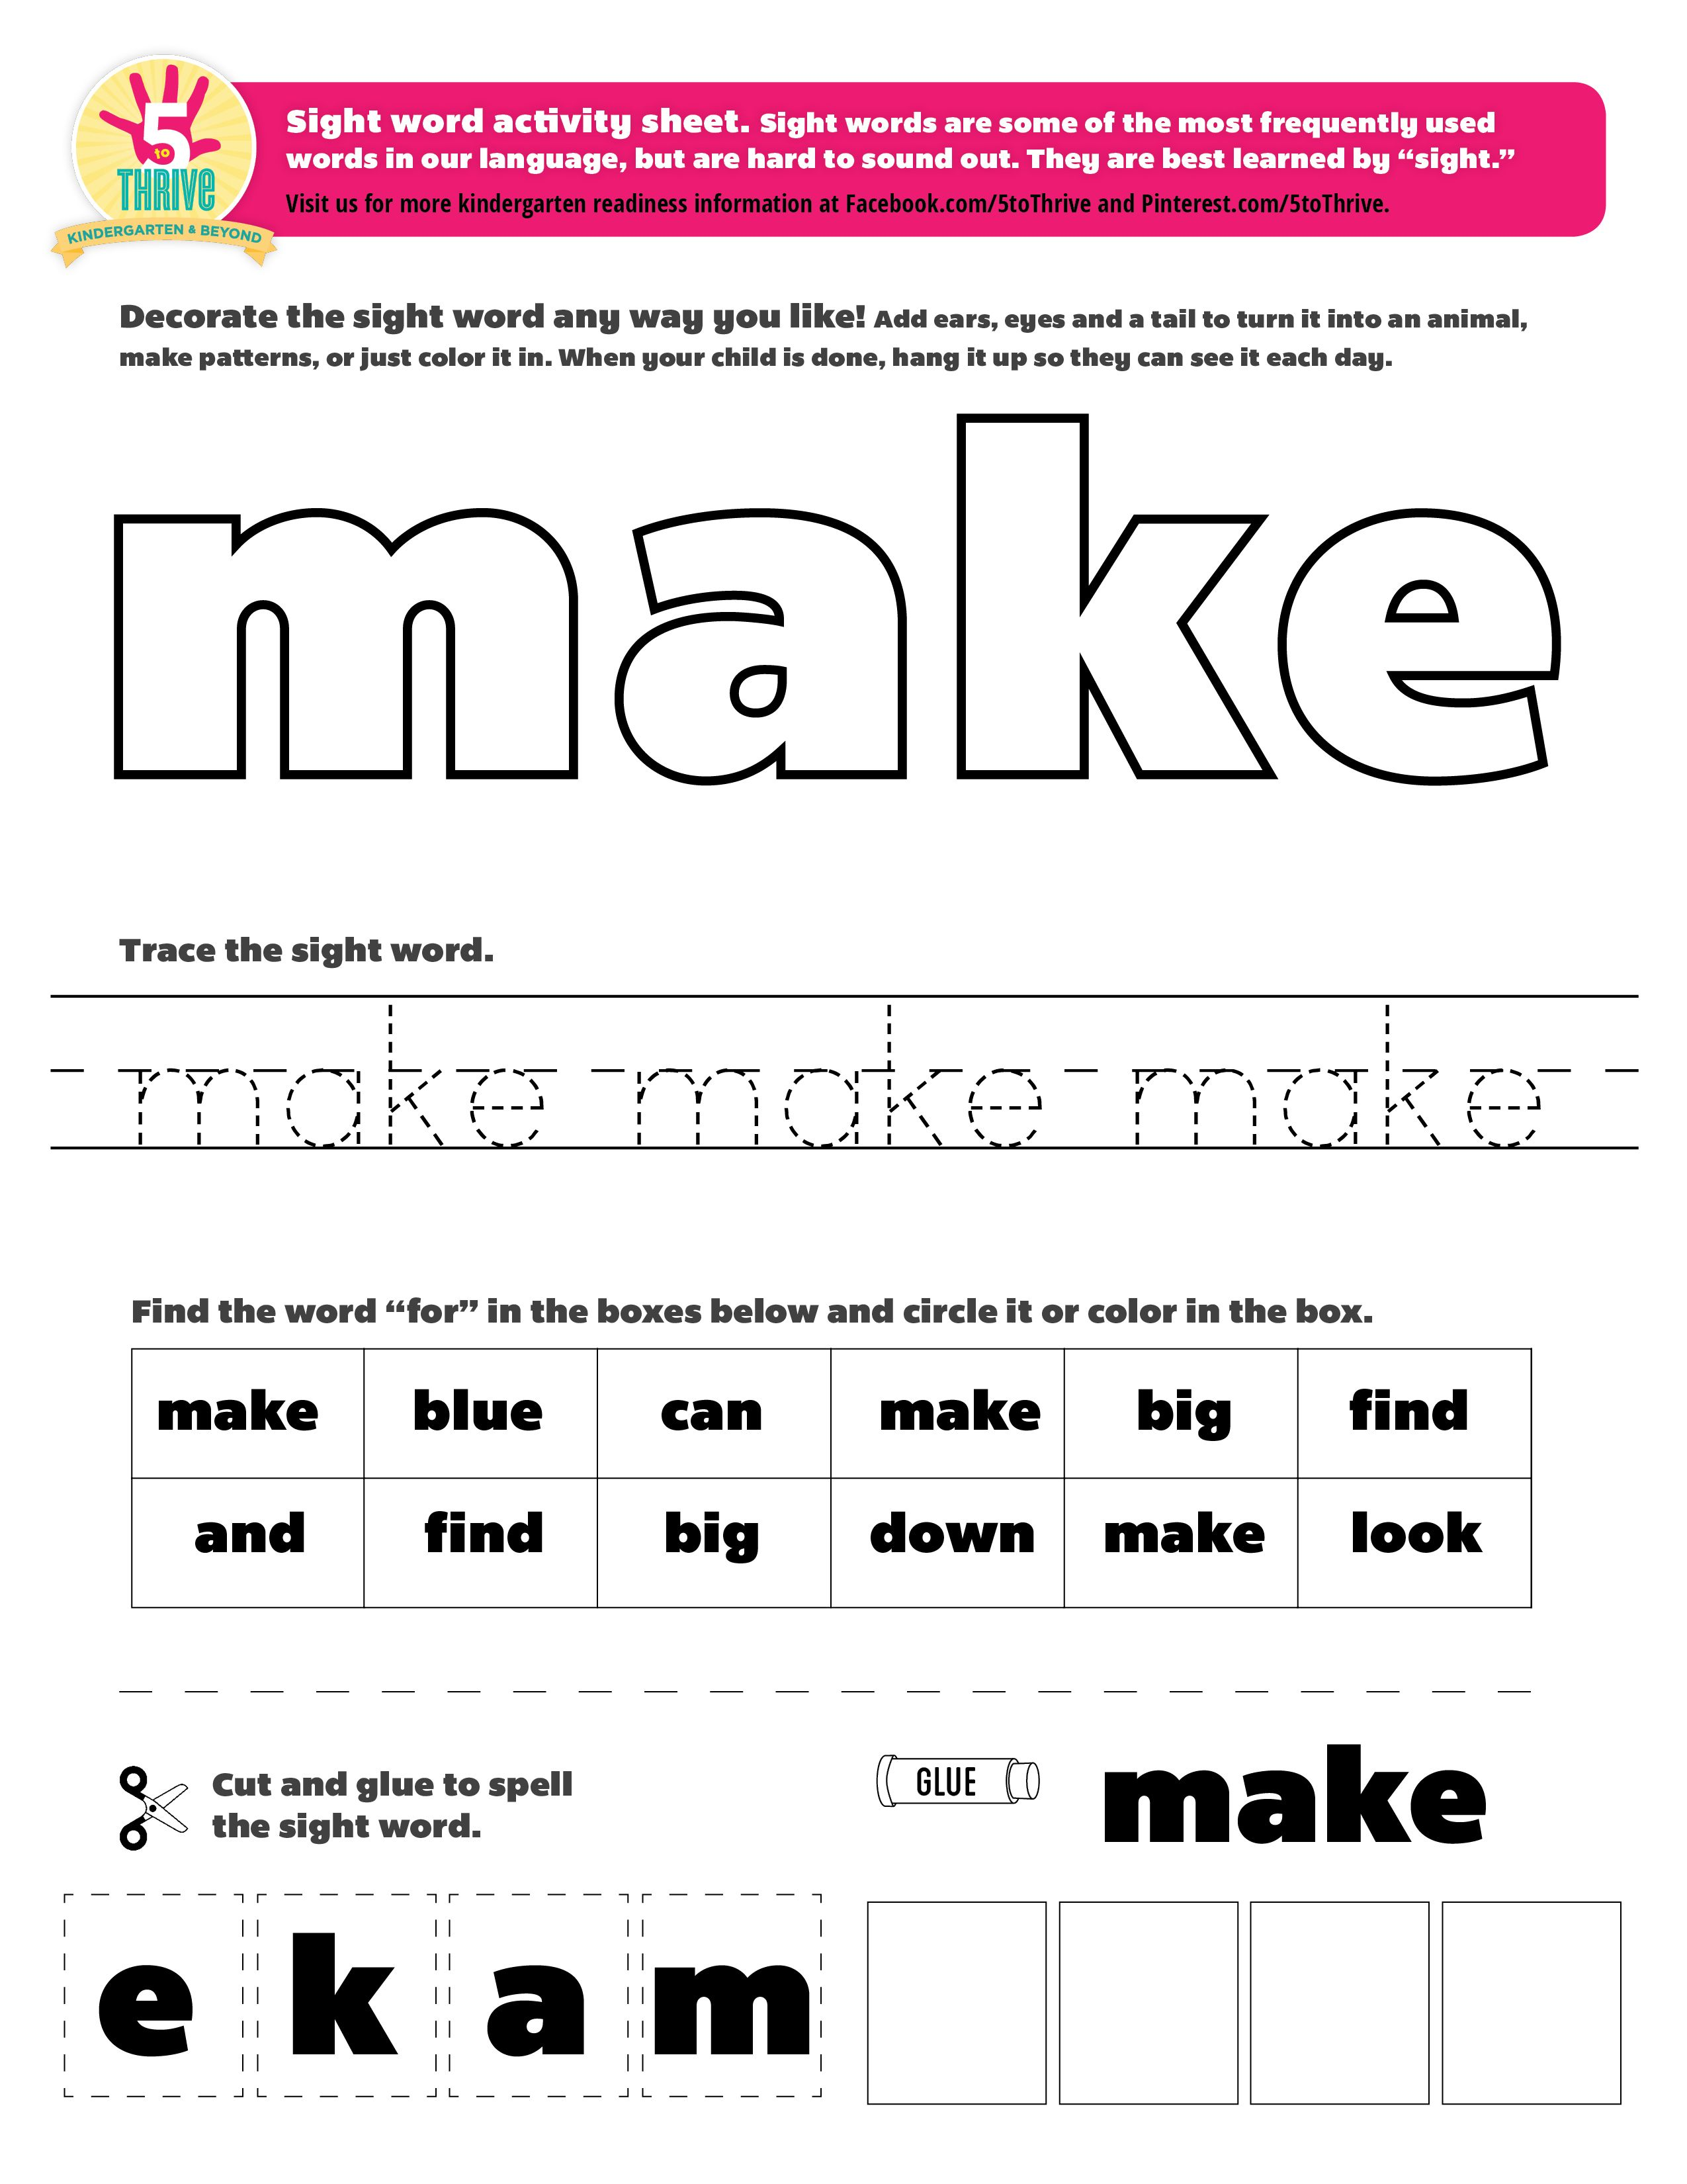 The Sight Word This Week Is Make Sight Words Are Some Of The Most Frequently Kindergarten Worksheets Sight Words Sight Word Worksheets Preschool Sight Words [ 3301 x 2550 Pixel ]